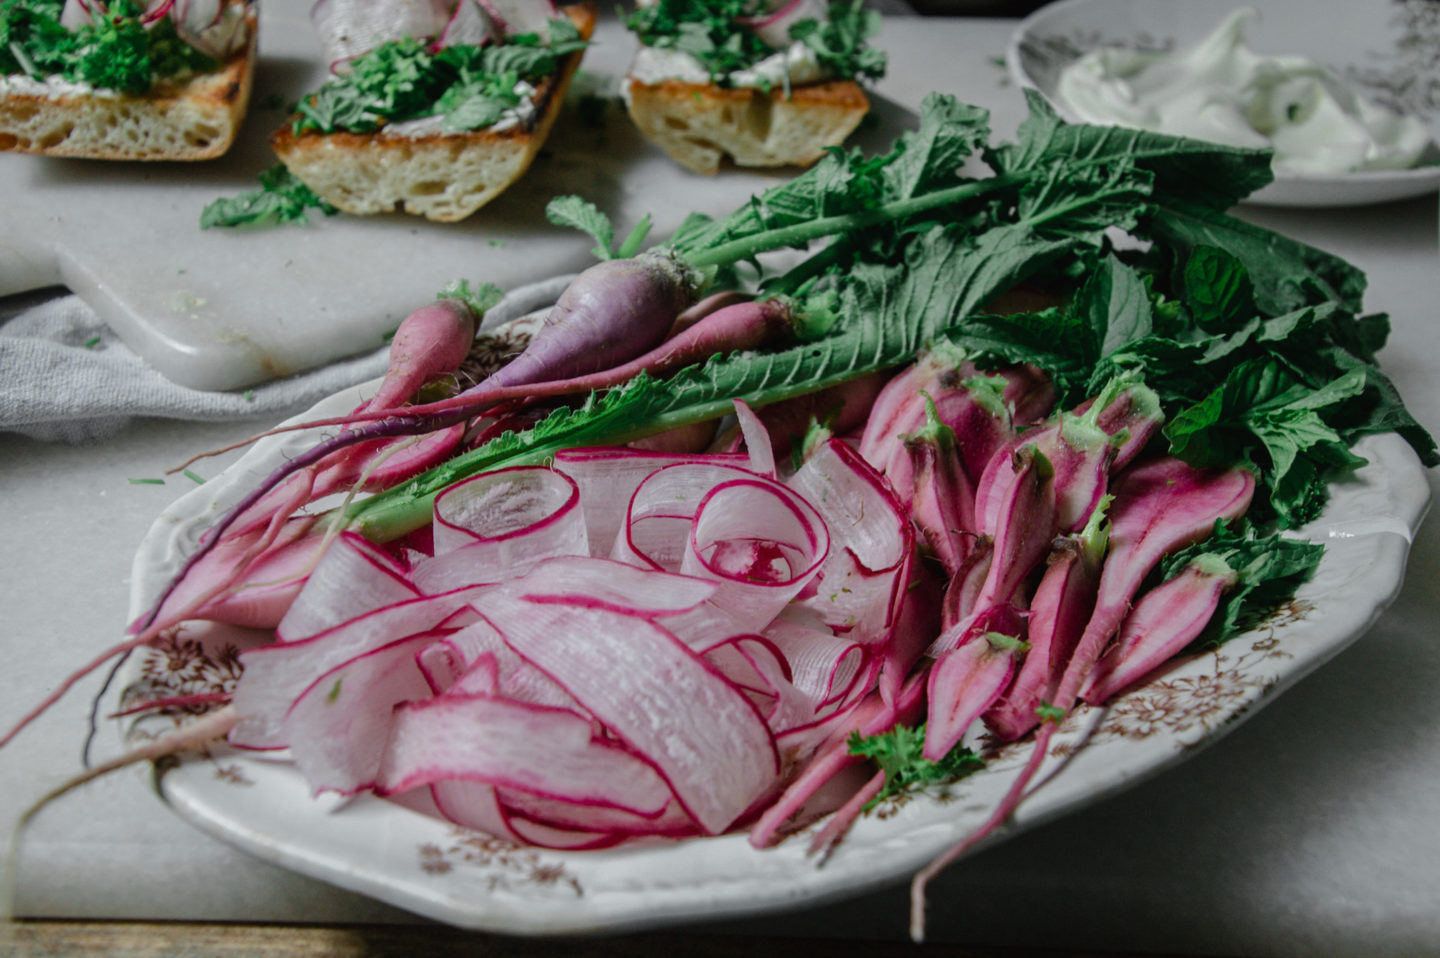 Slice radish with a vegetable peeler or mandolin to get this curly strips